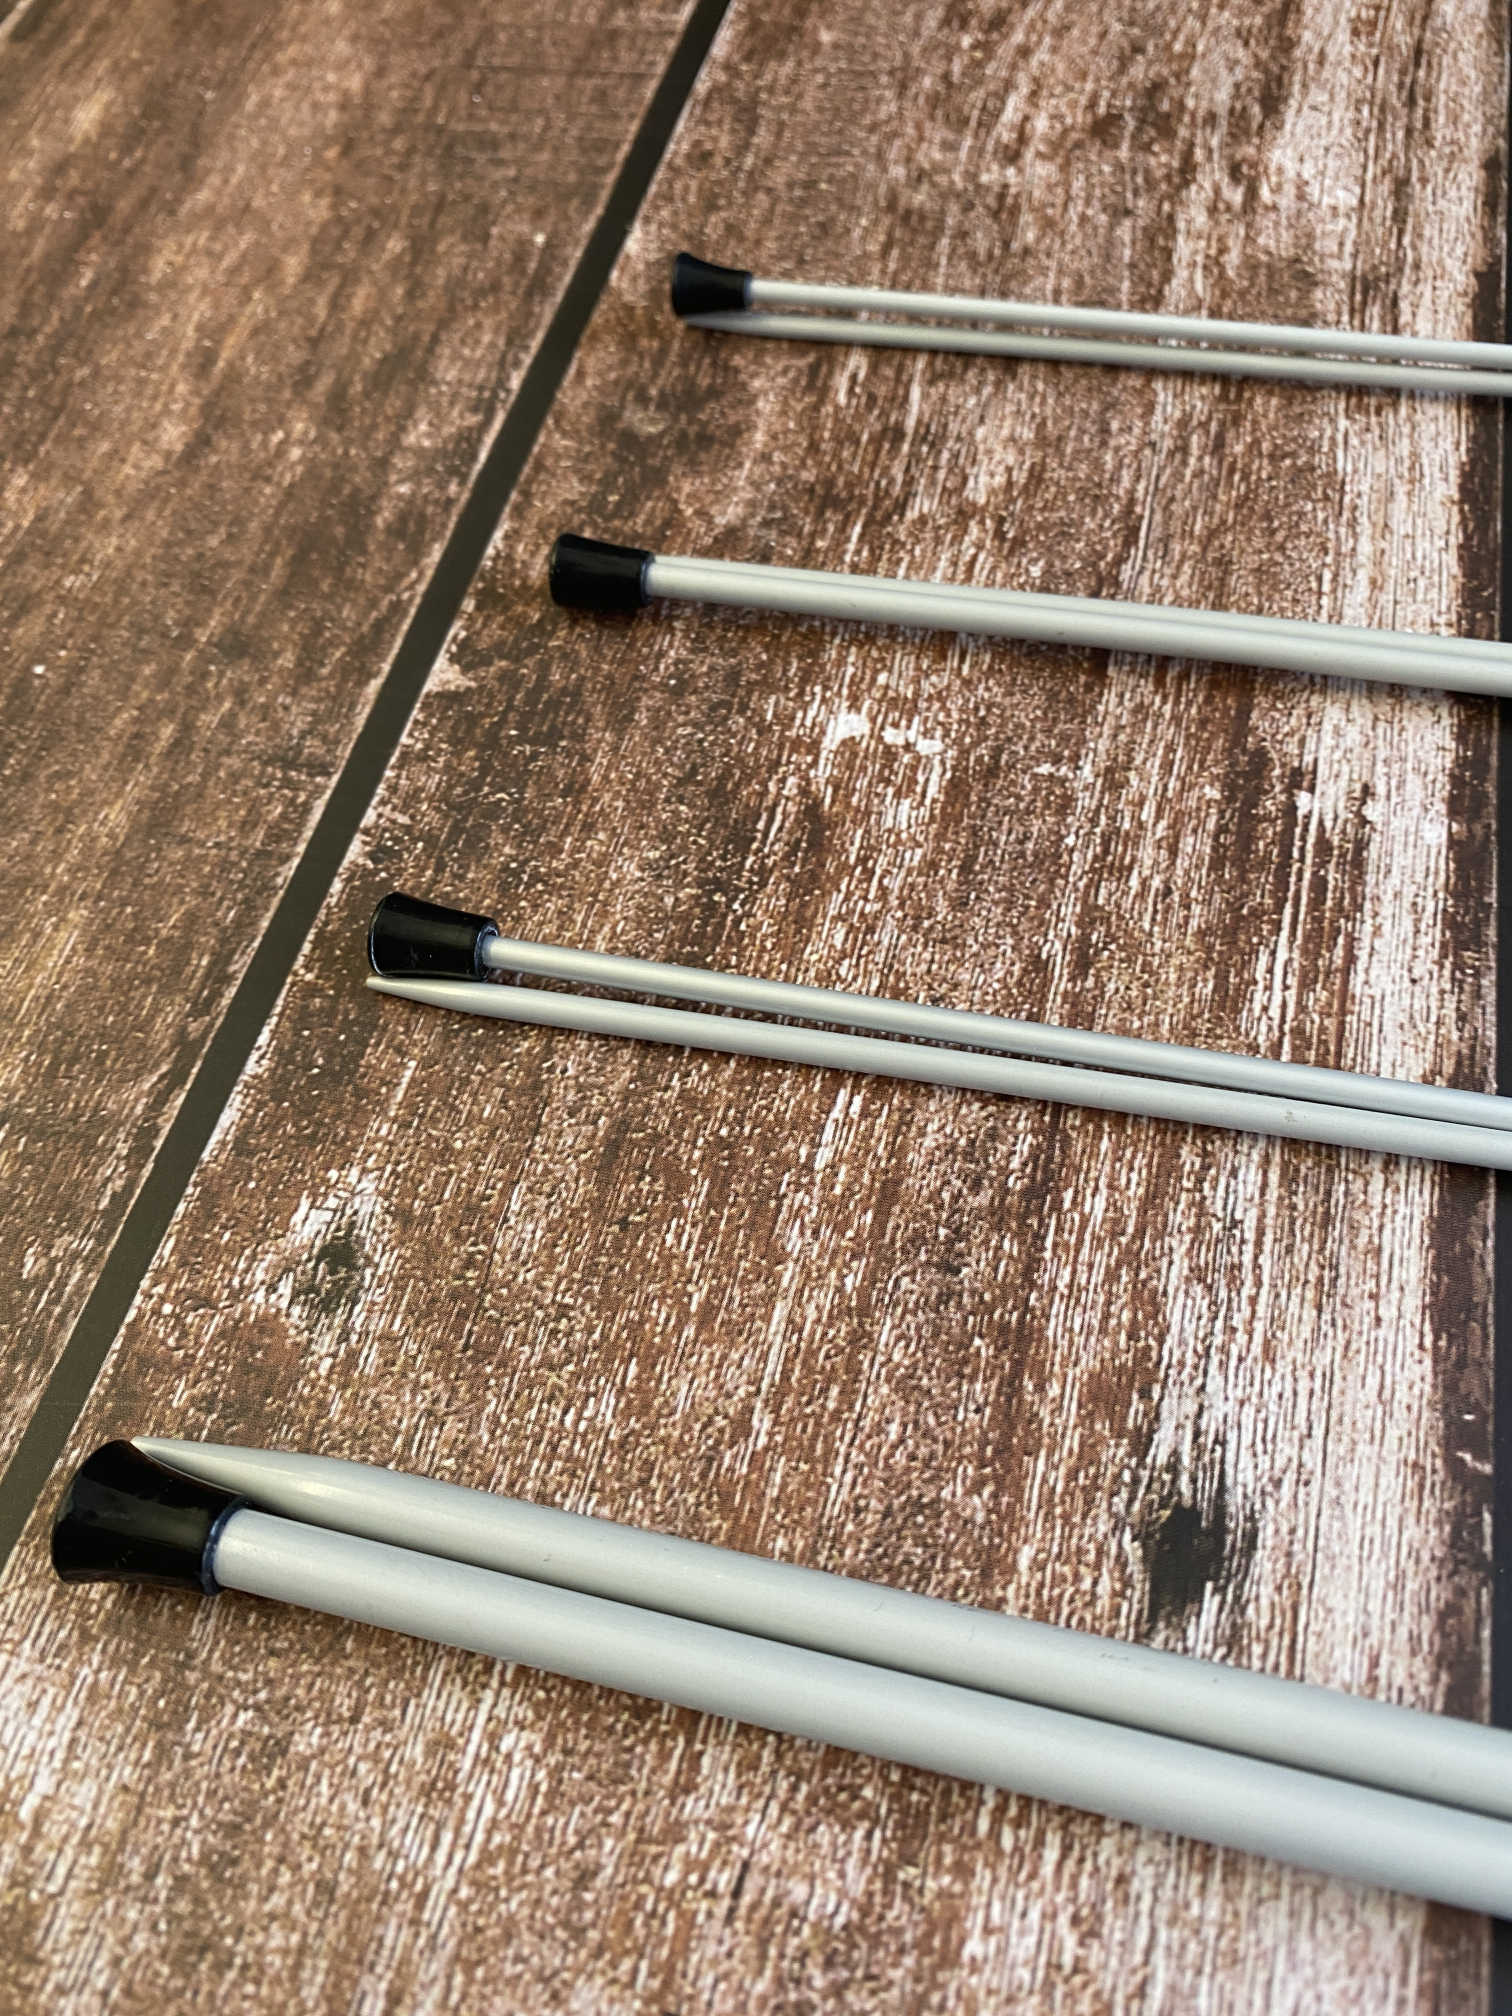 Milward Single Point Knitting Needles - 30cm